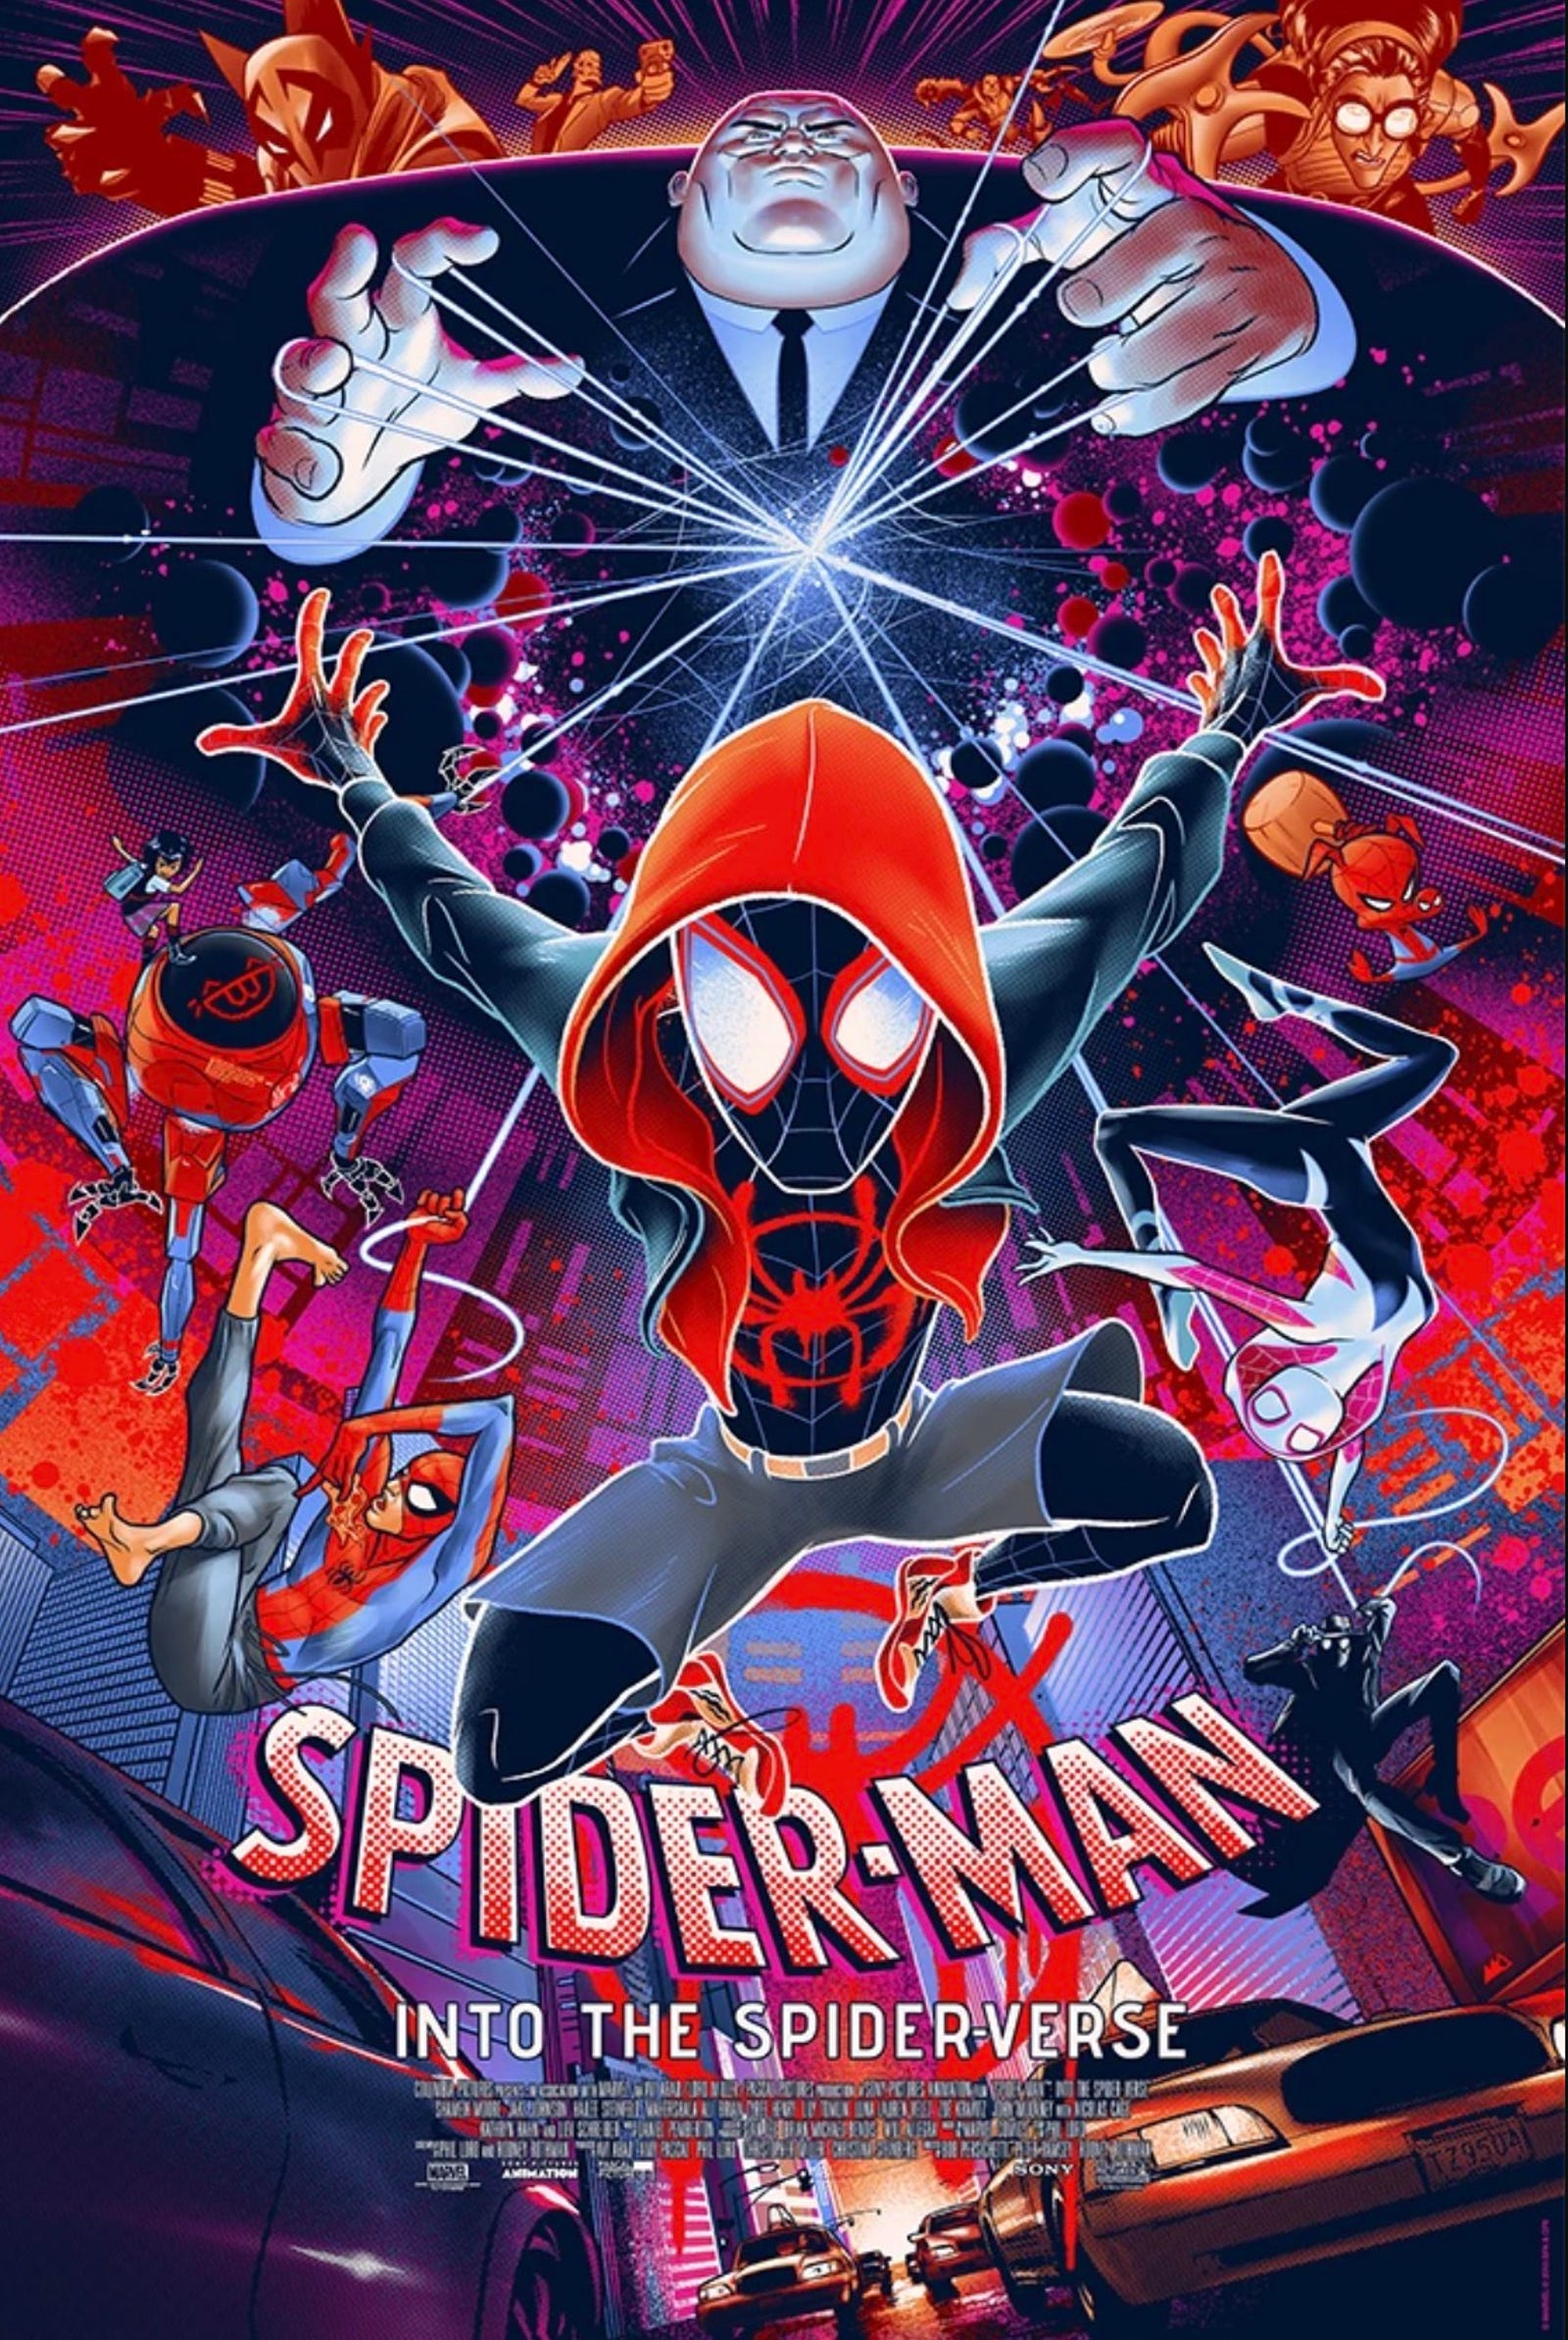 There was so, so much amazing Spider-Verse art this year. Here are three of the best. First, by Martin Ansin from Mondo.